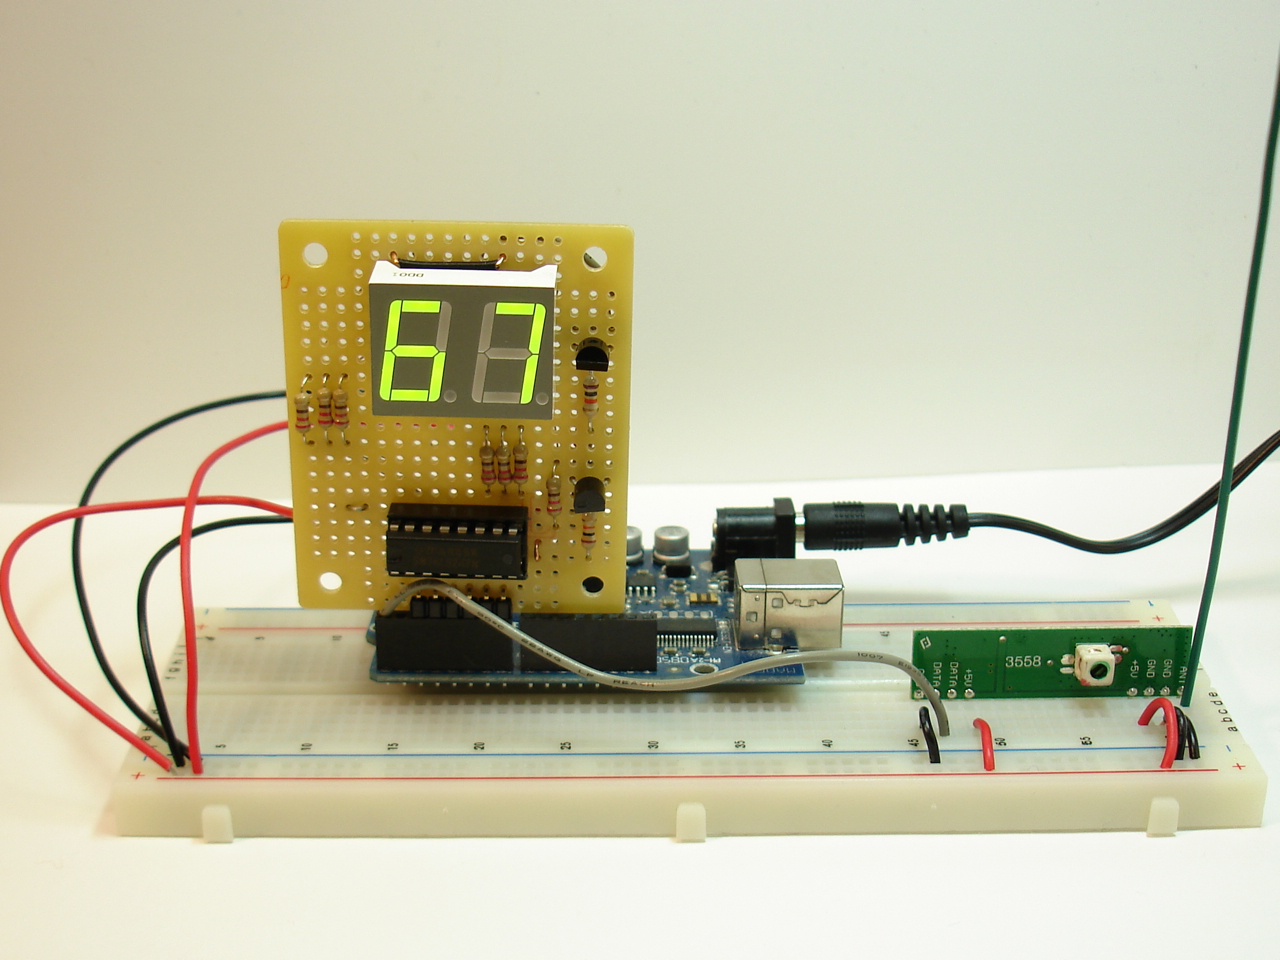 RF receiver with temperature display